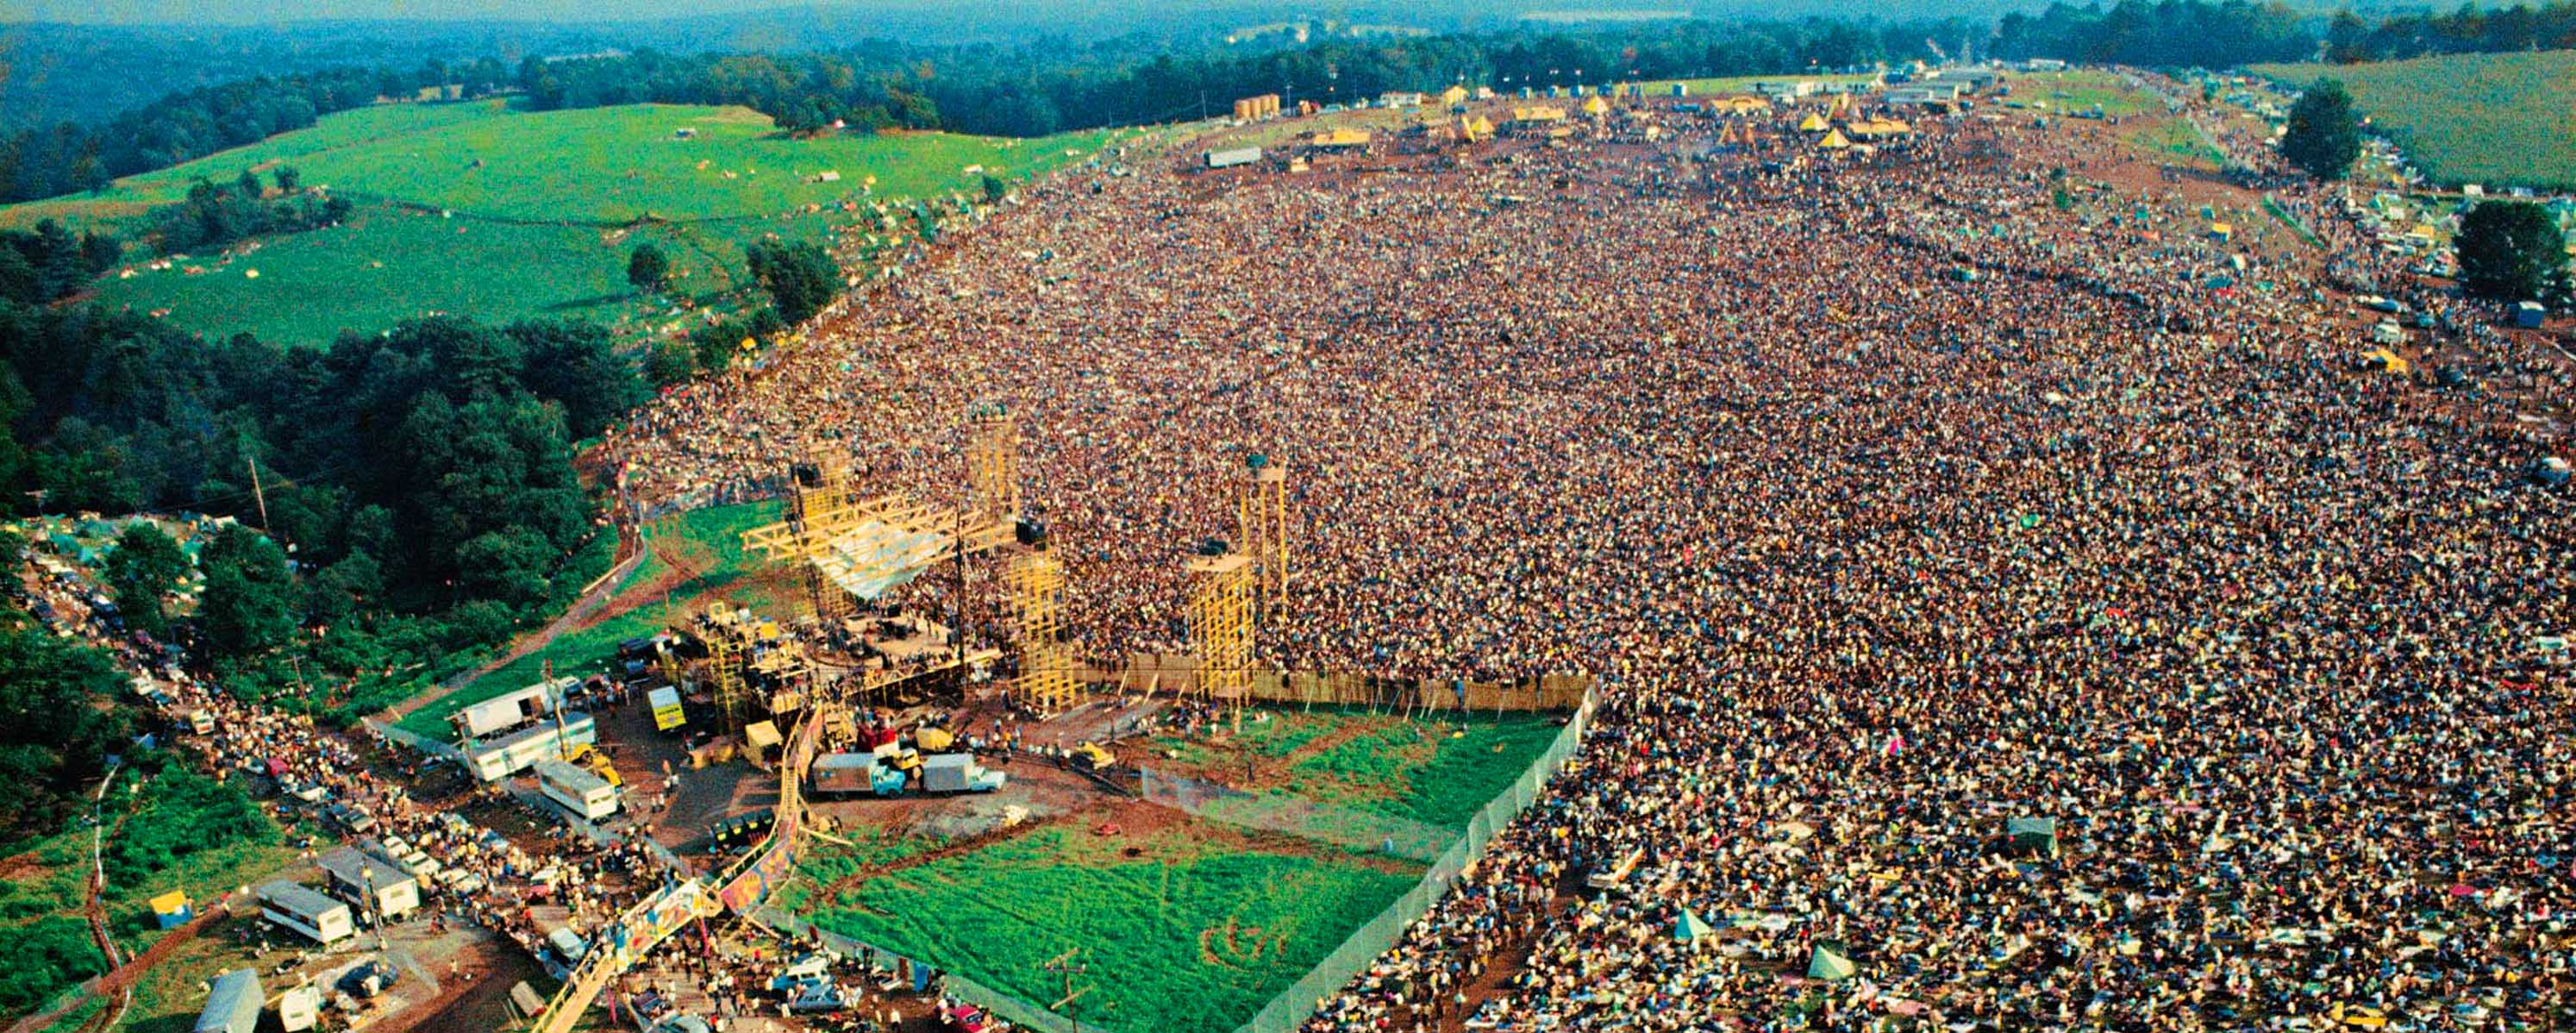 Festival Planned to Celebrate Woodstock 50th Anniversary